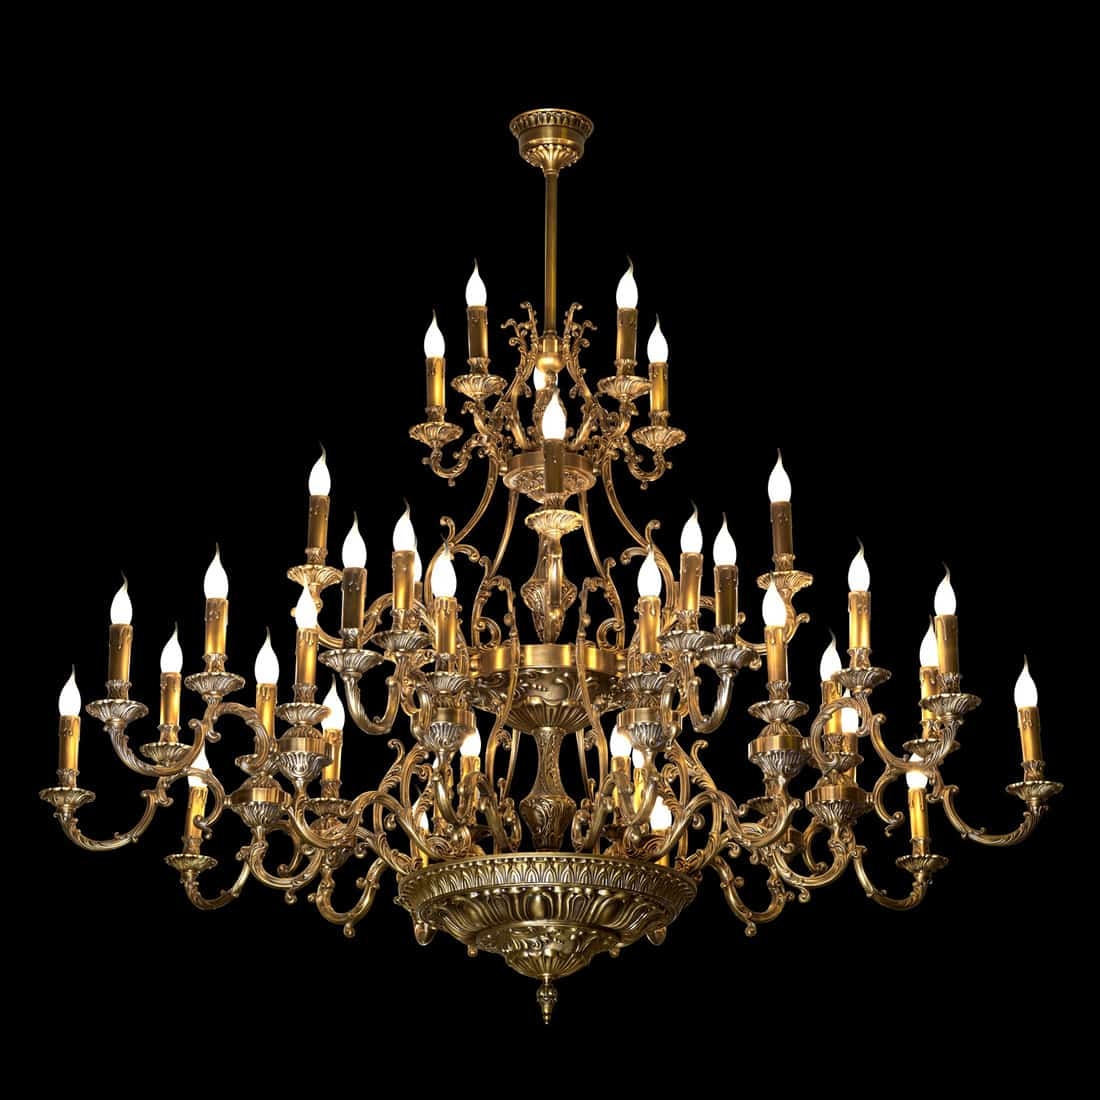 Chandelier isolated on black